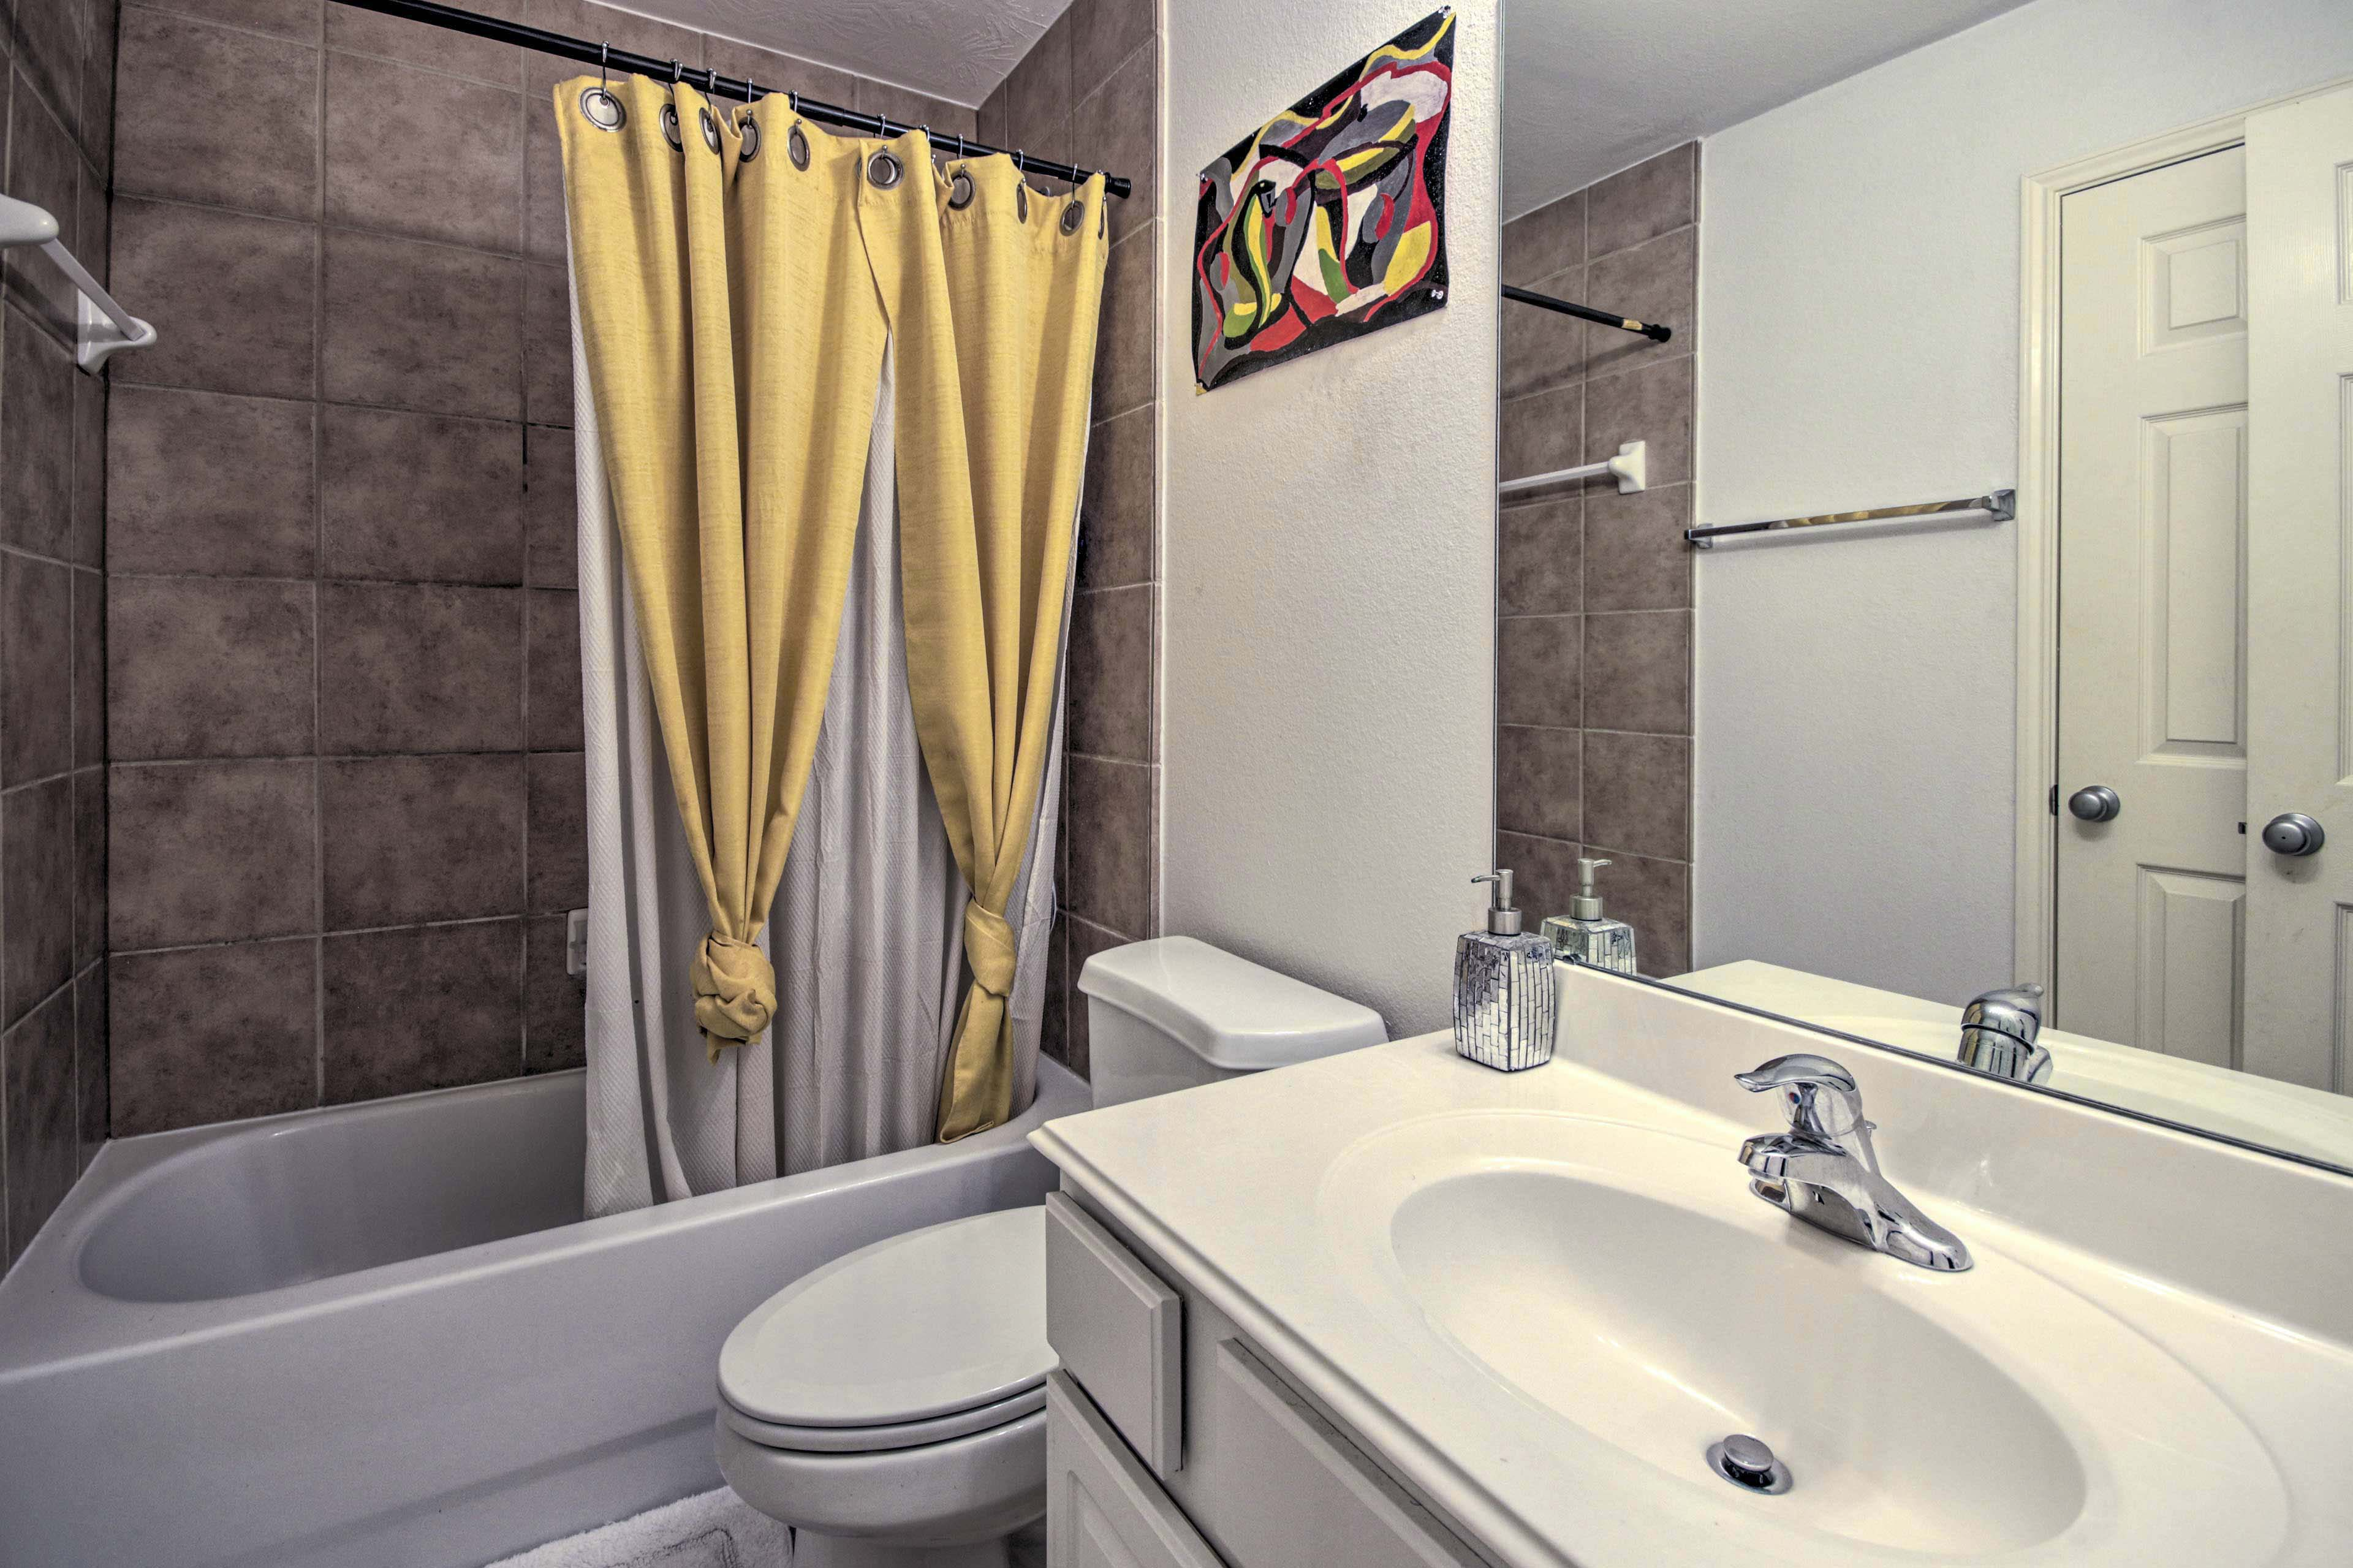 The second full bathroom features a shower/tub combo.